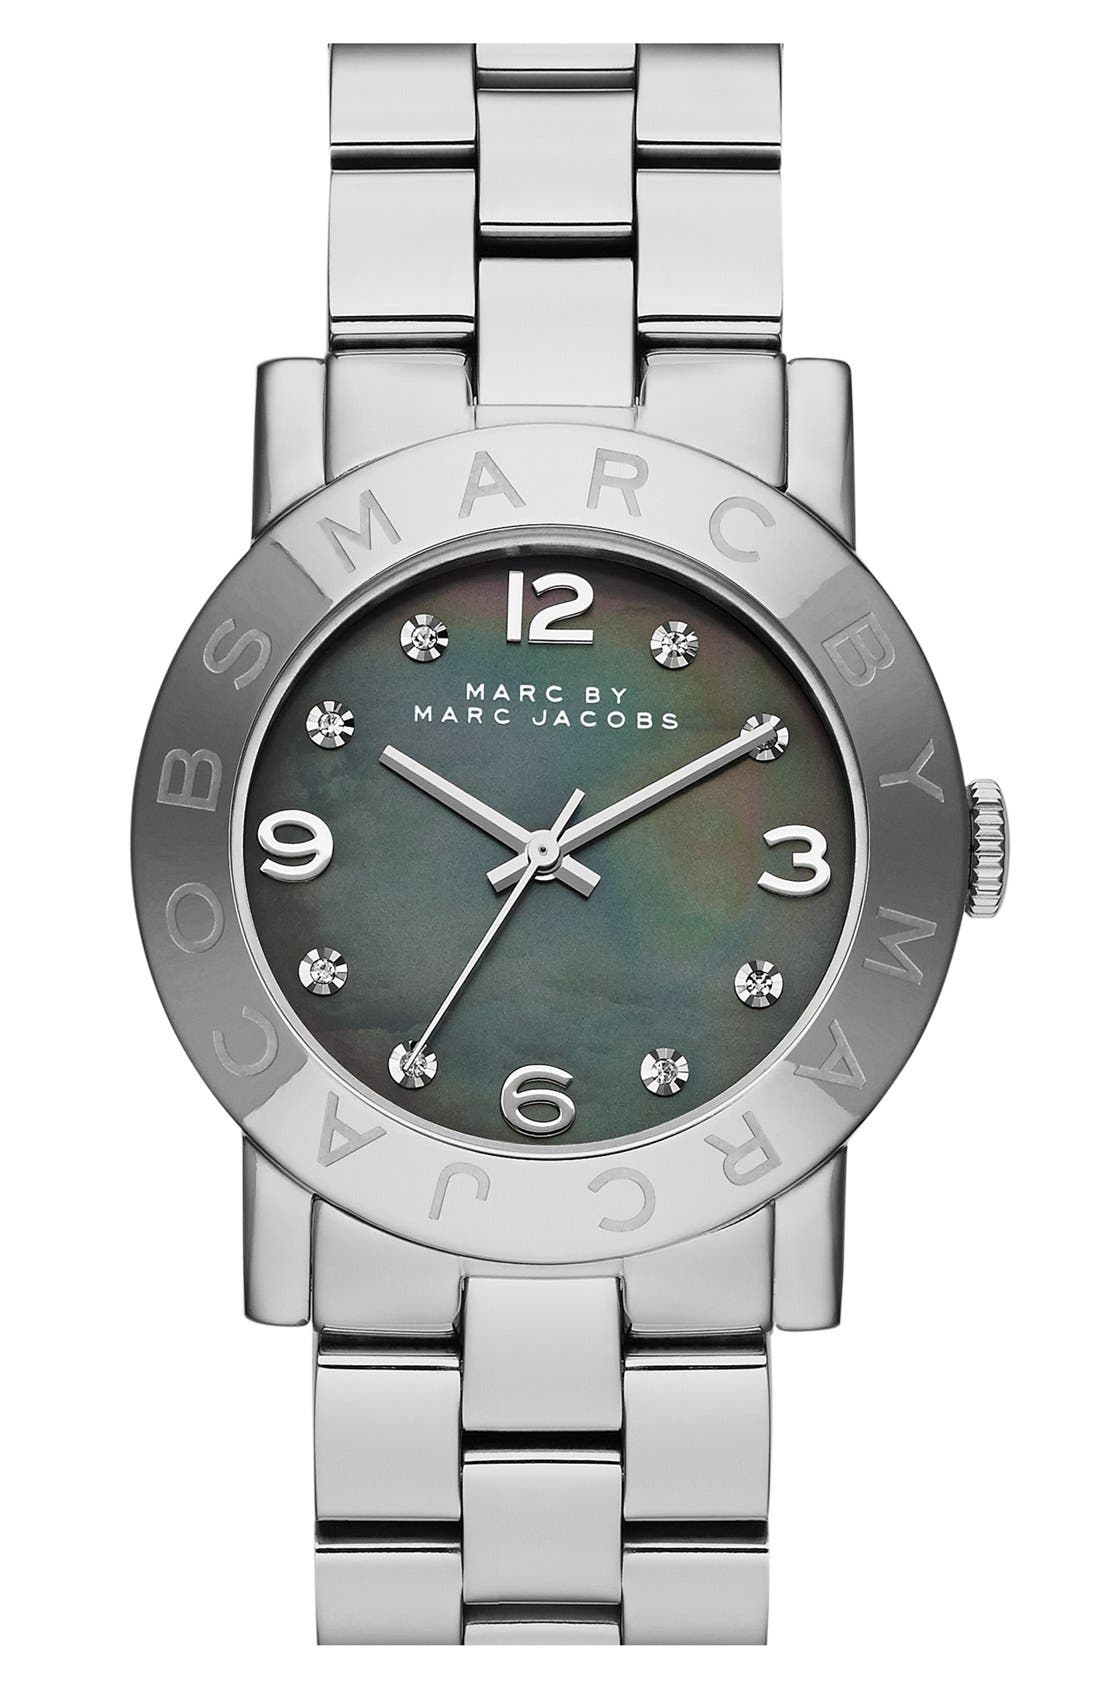 Main Image - MARC JACOBS 'Amy' Mother-of-Pearl Dial Watch, 37mm